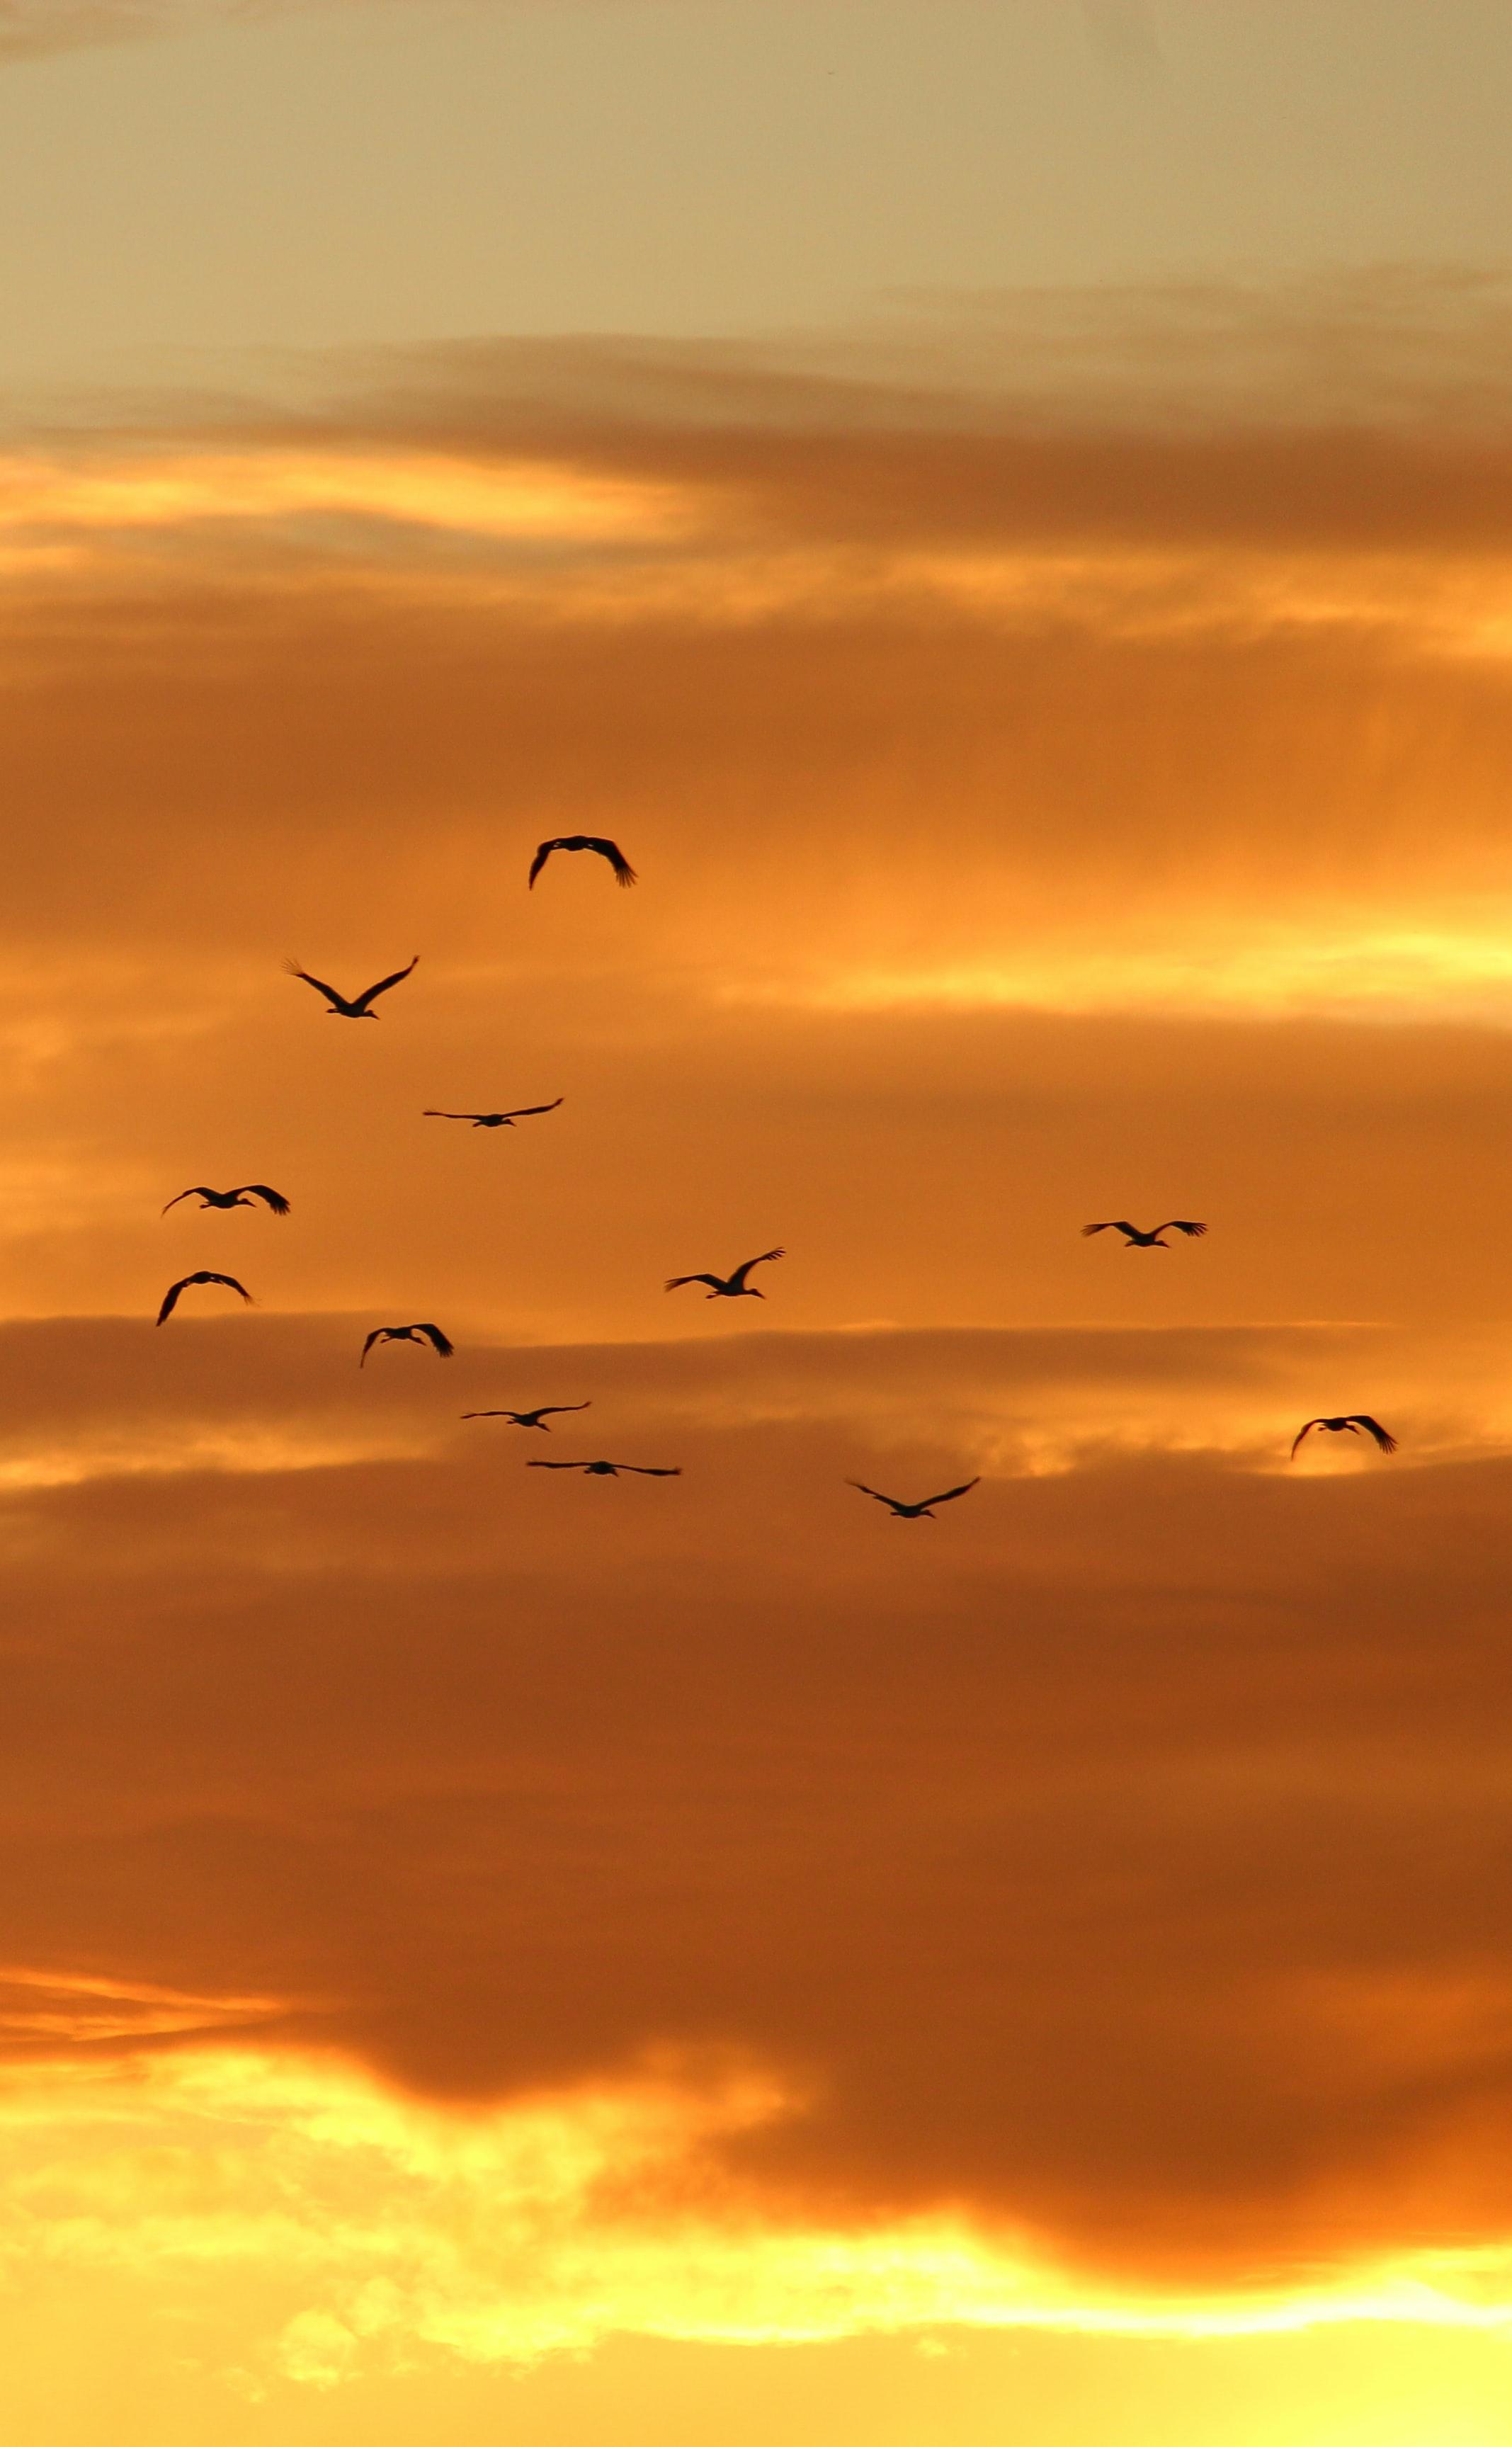 birds flying on sky